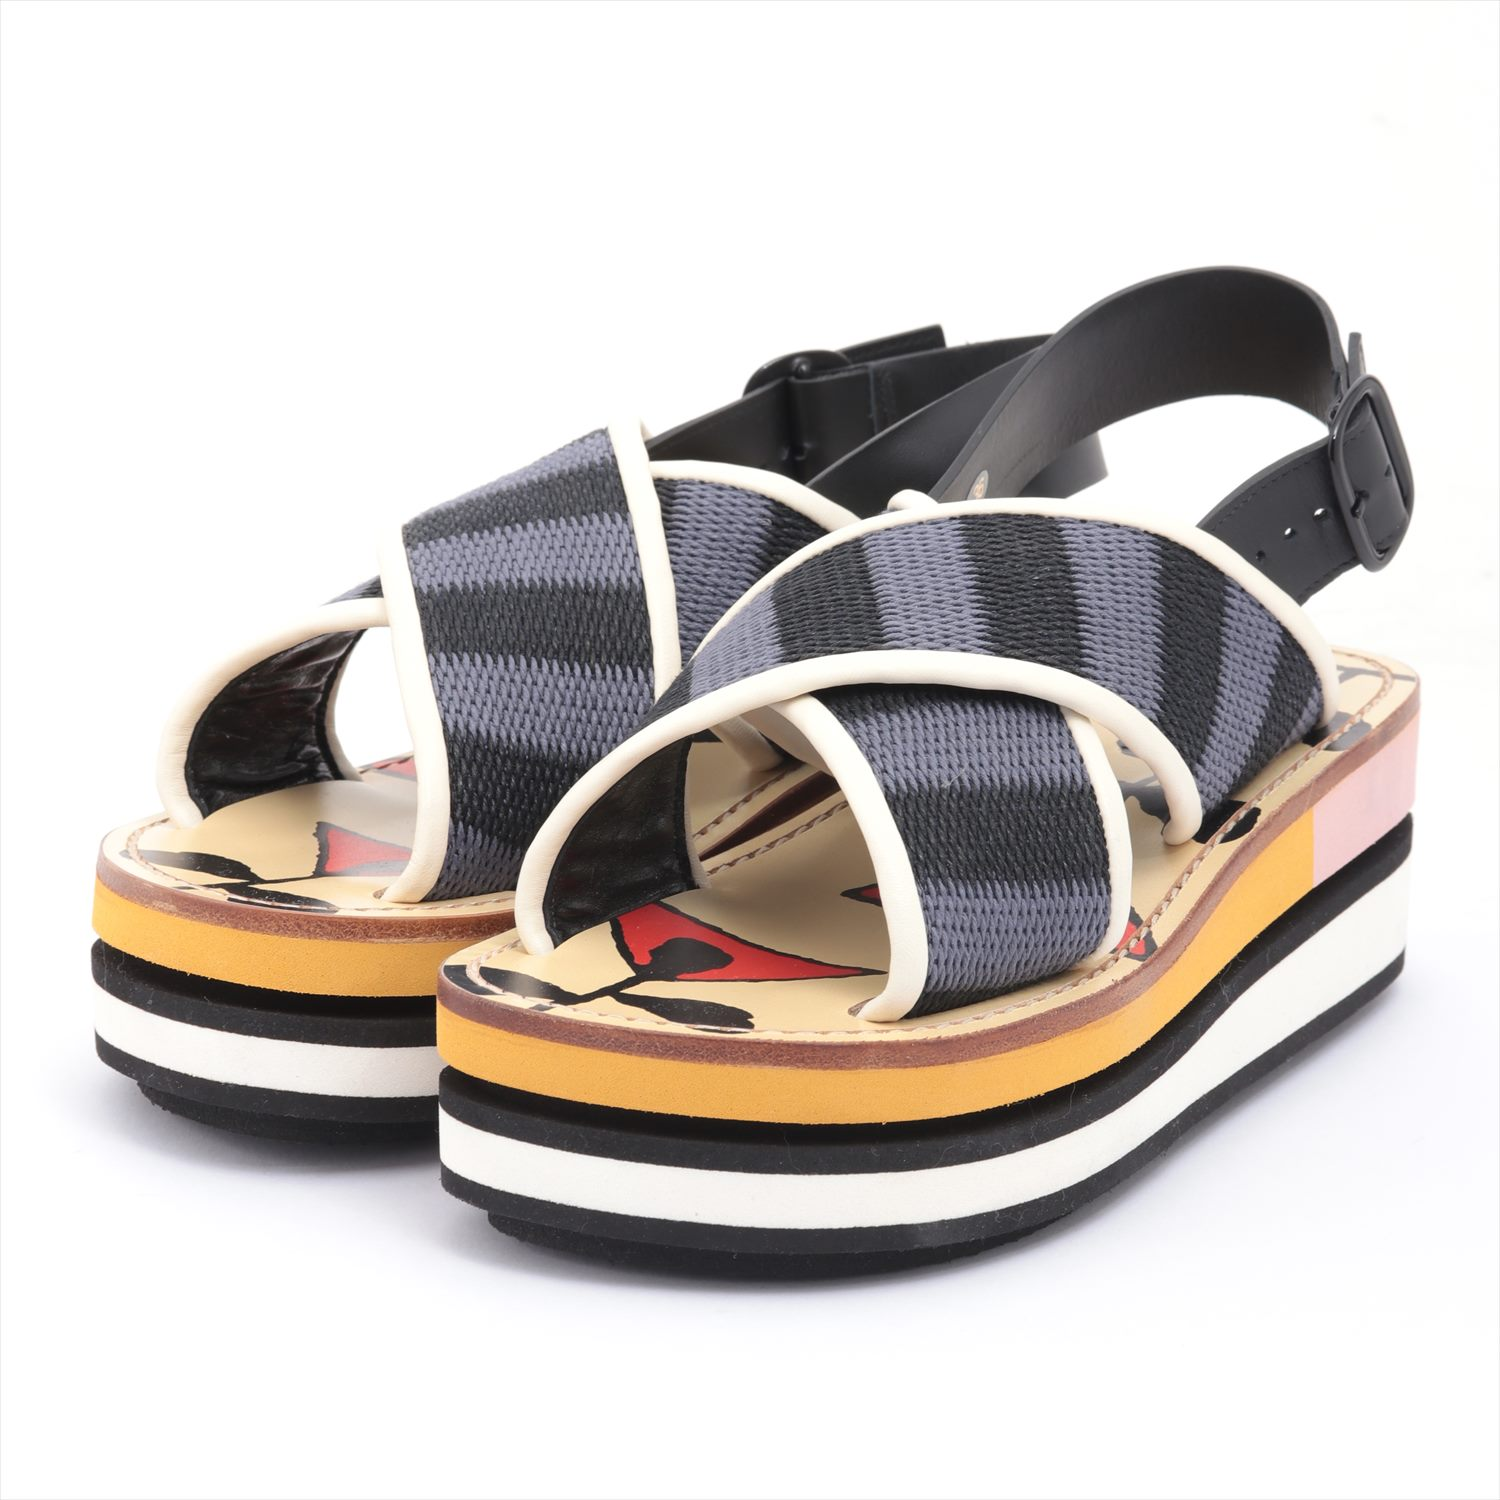 [Used article] Marni leather sandals 36 Women's multi-colored platform with a platform box